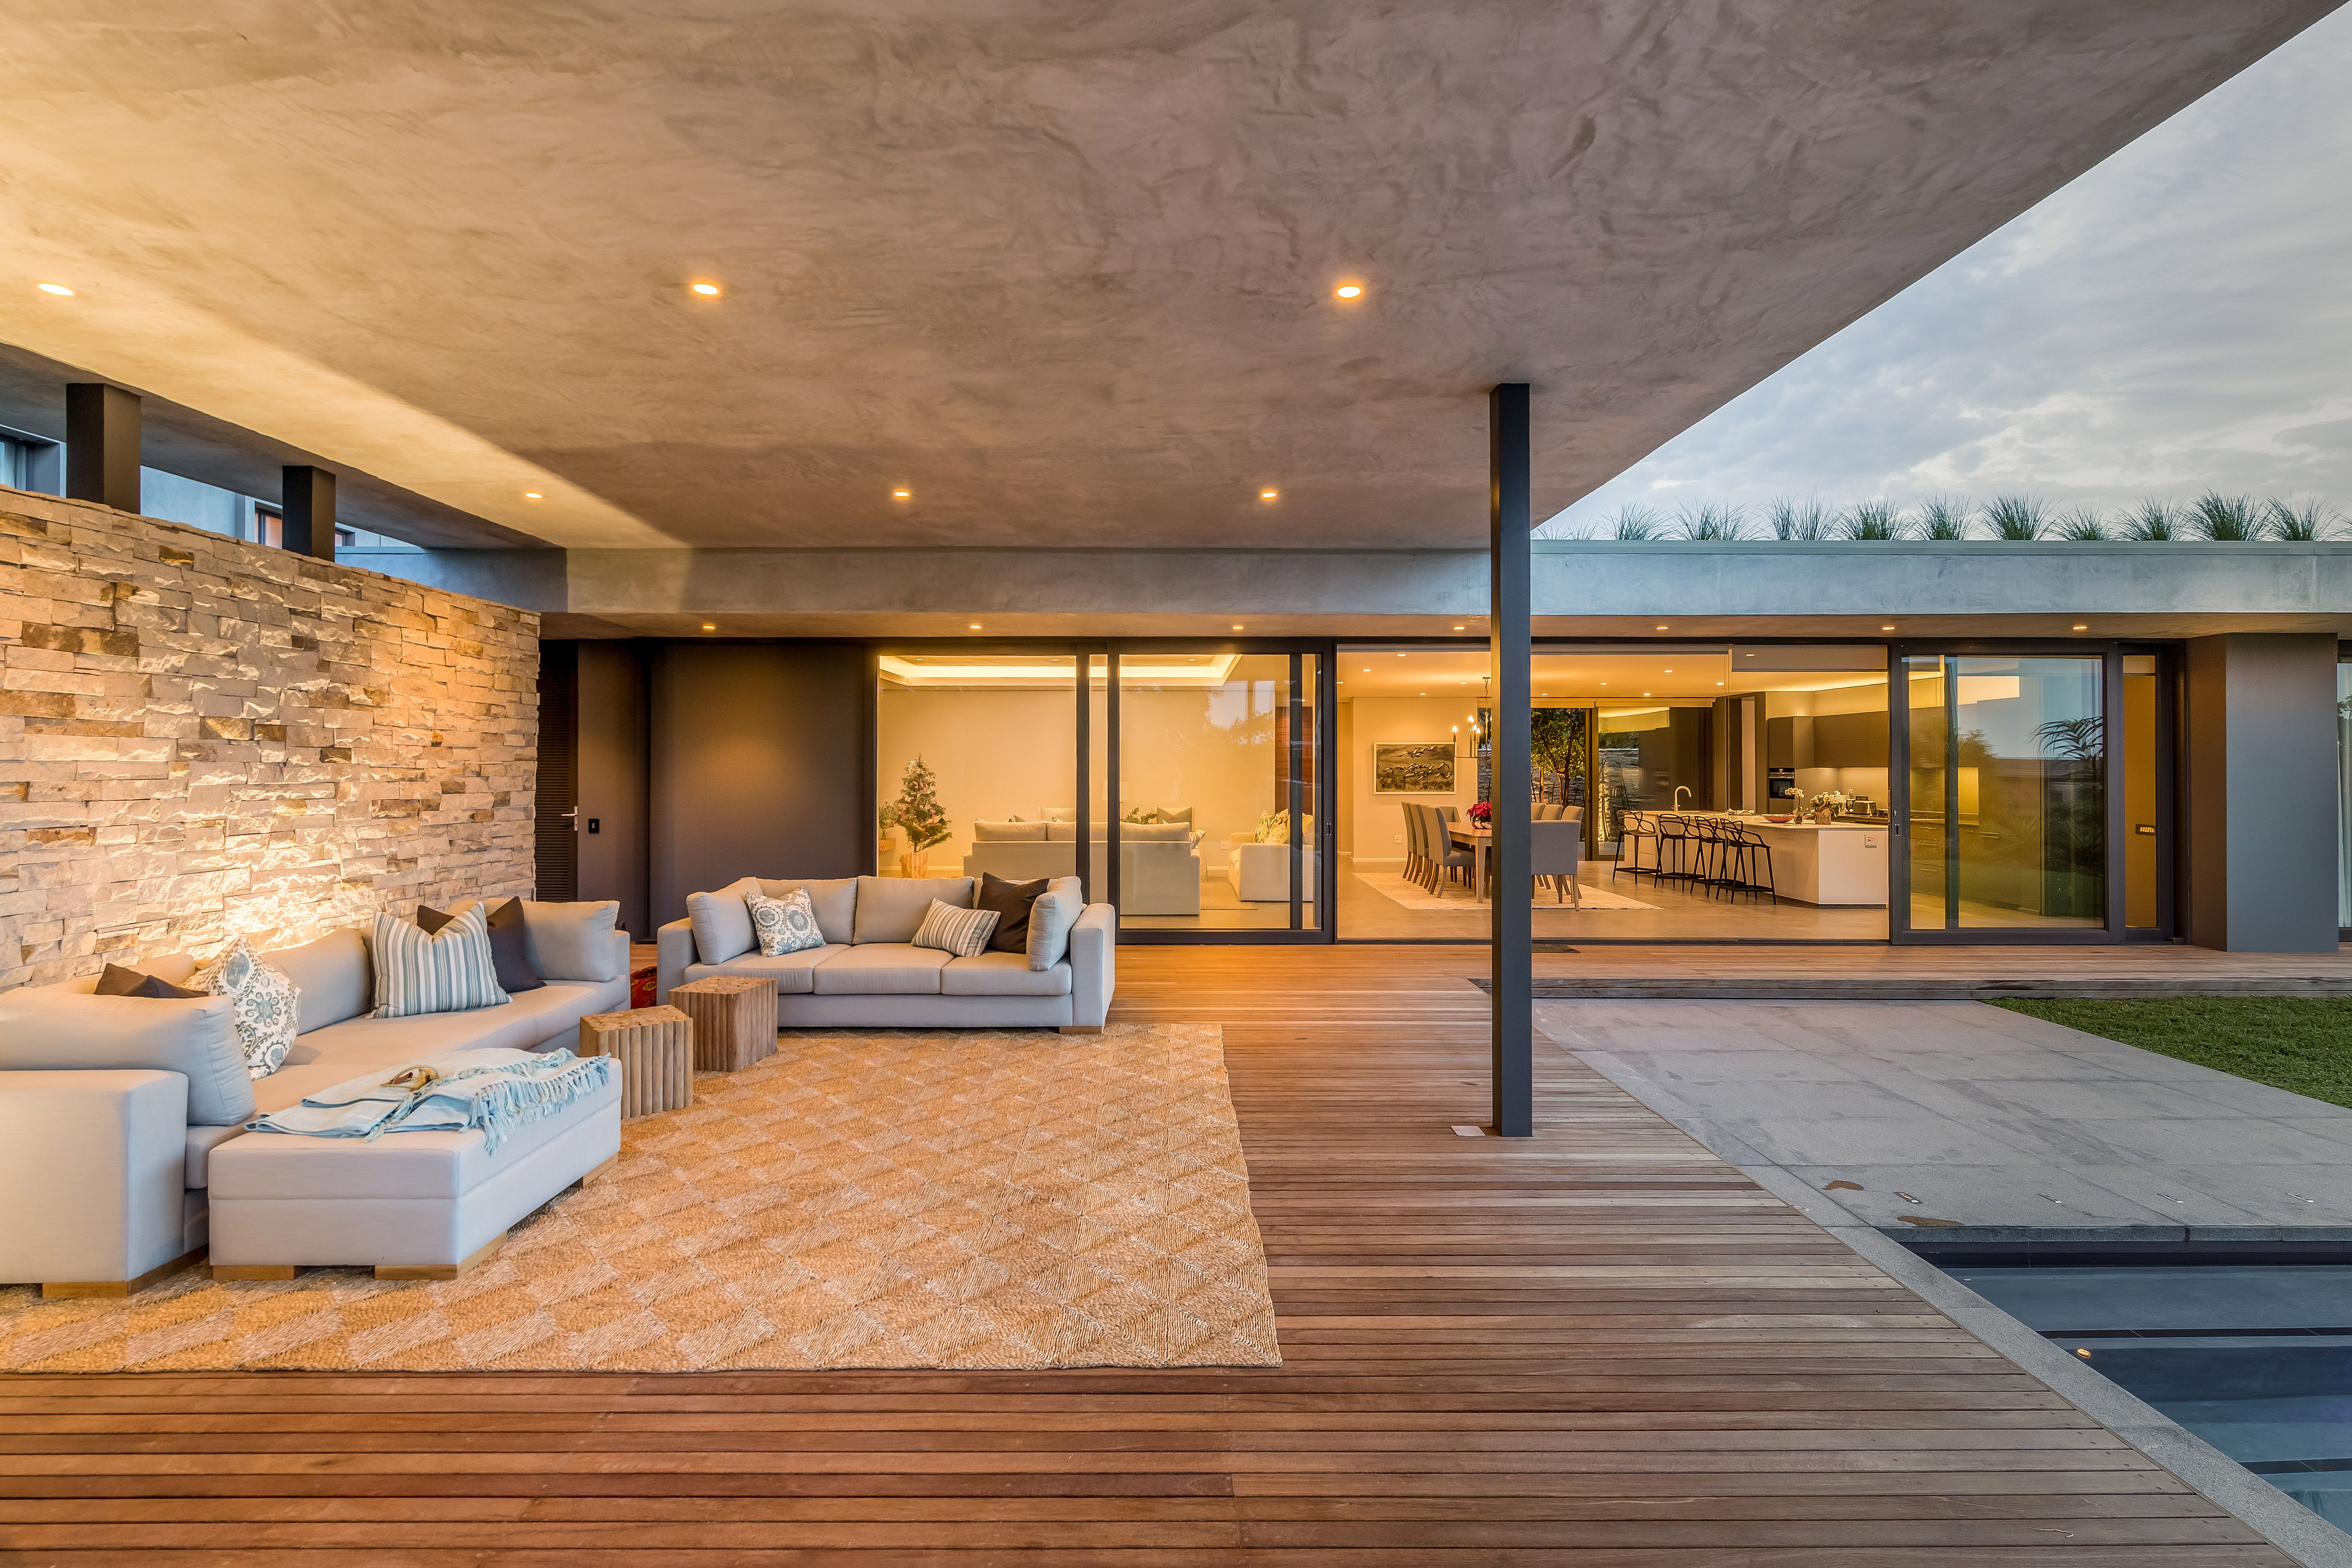 Orientated Around A Defined Courtyard This House Is Designed To